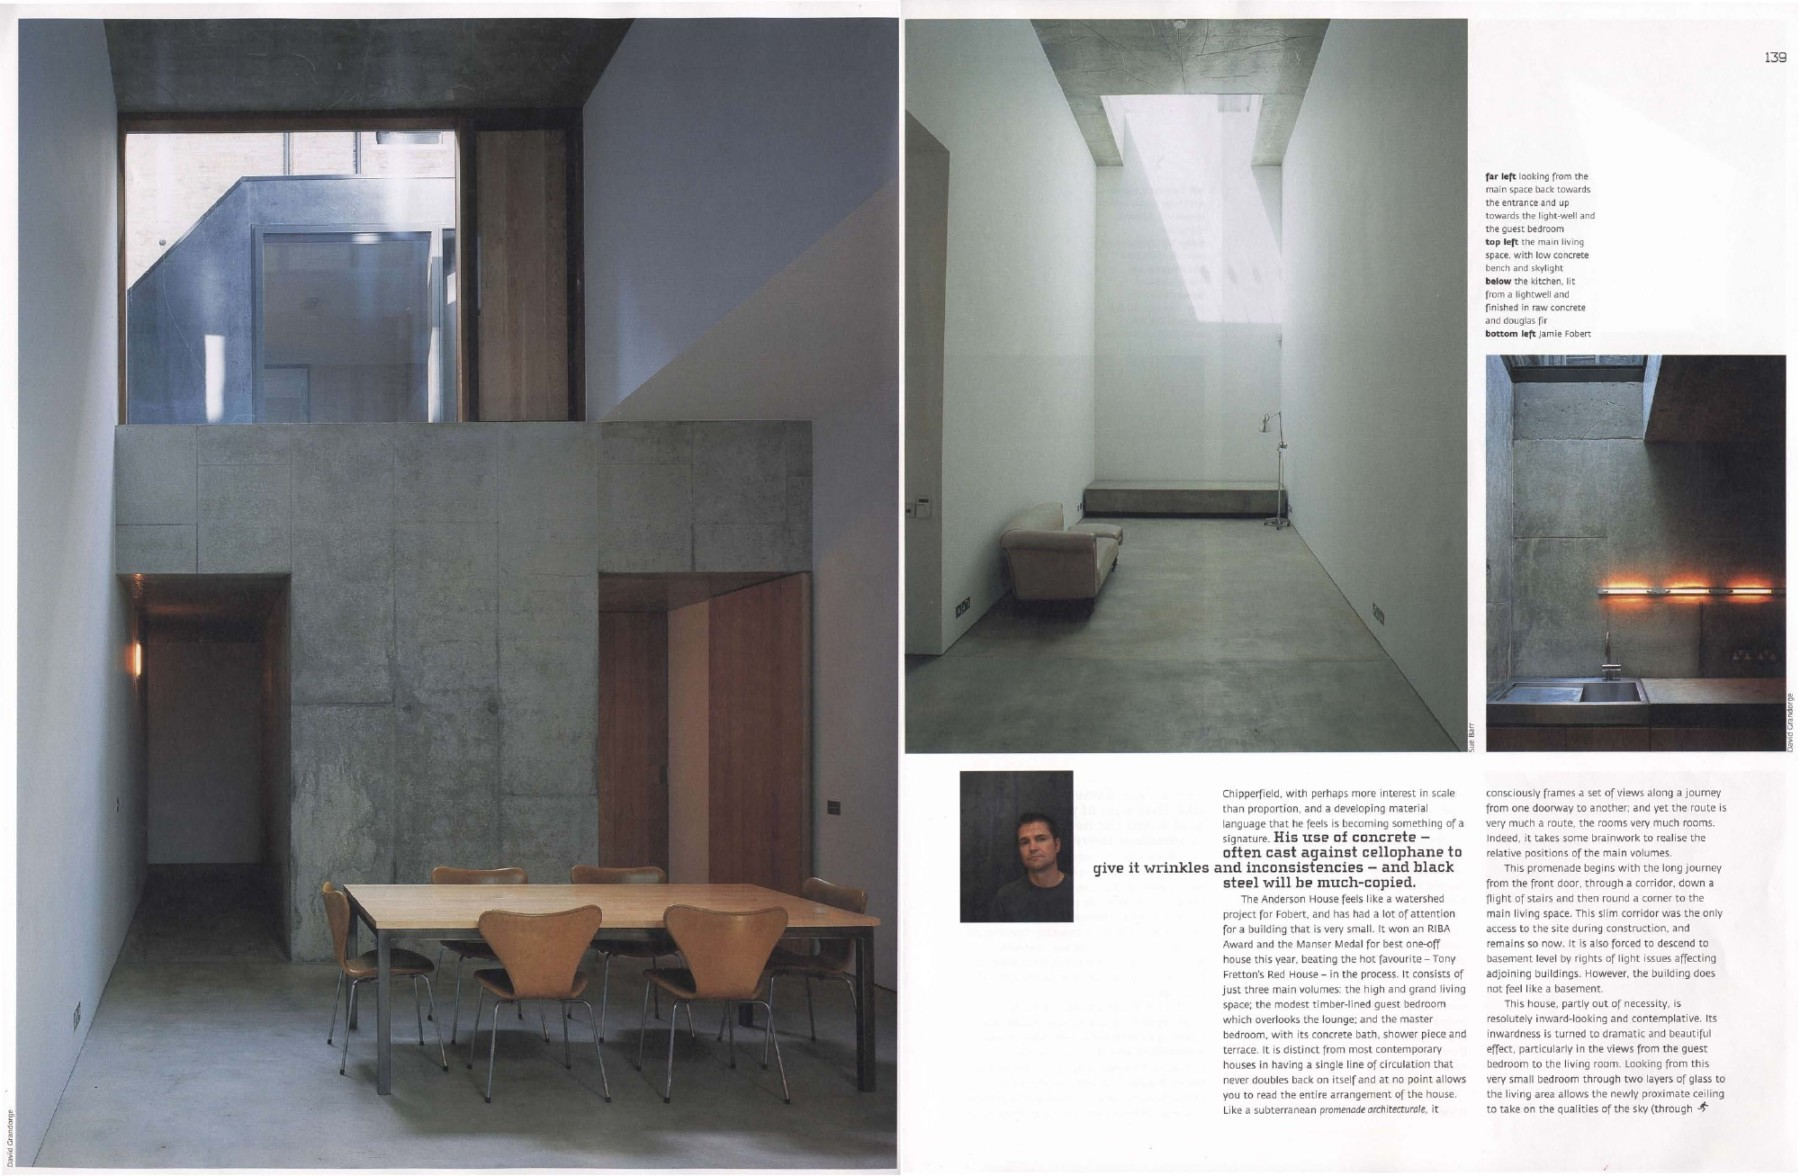 Jamie-Fobert-Architects-Anderson-House-icon-magazine-September-article-press (3)